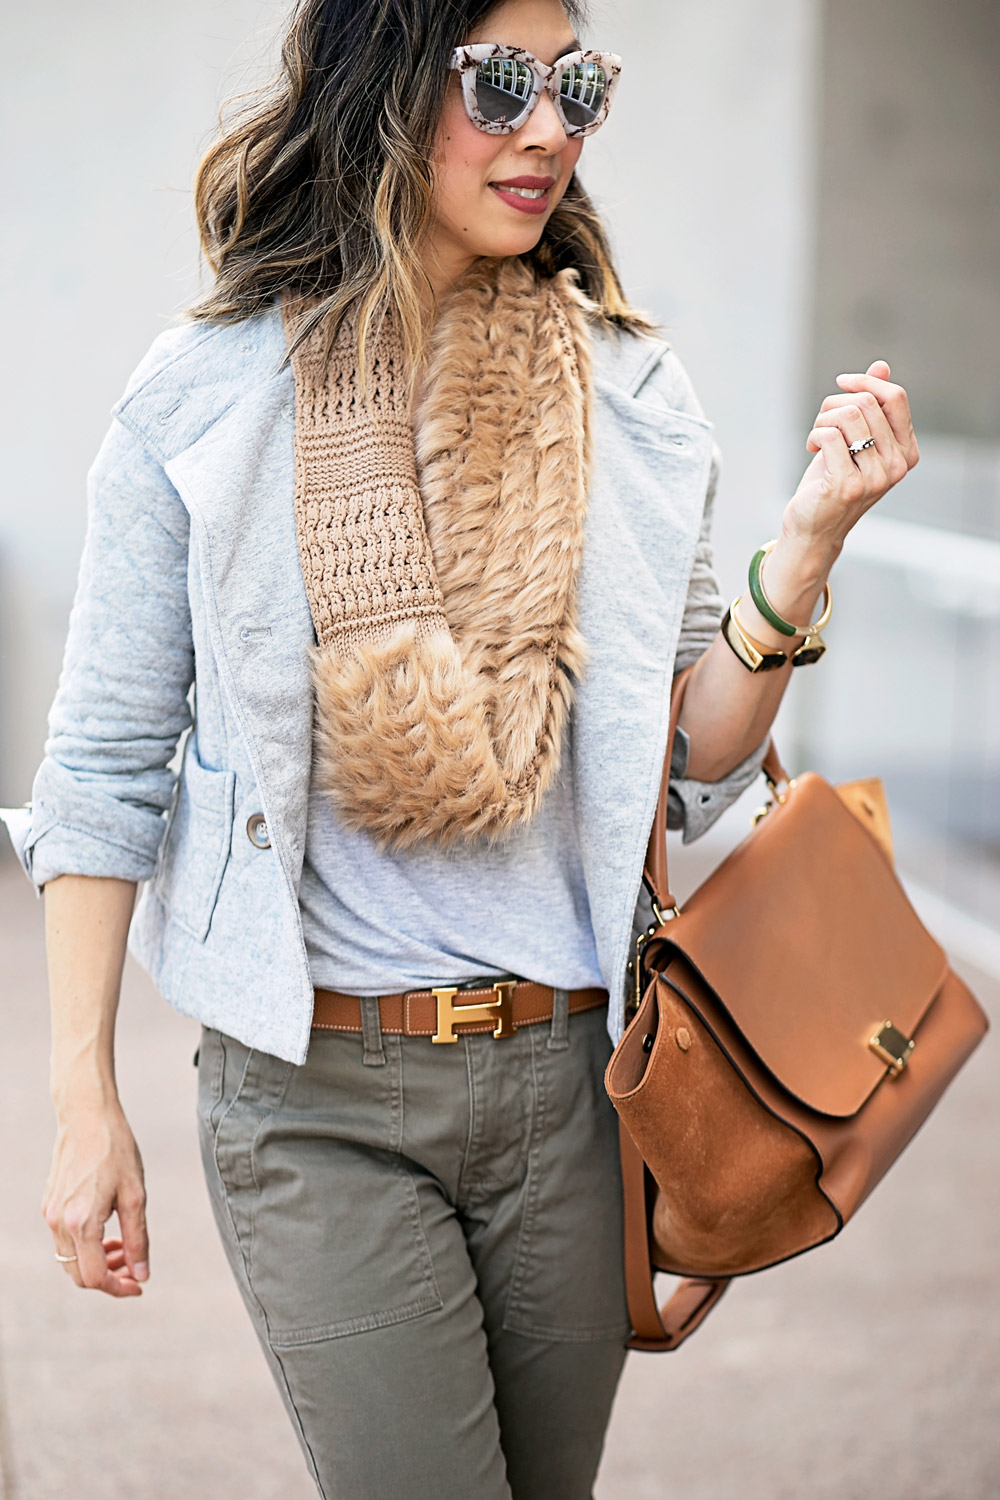 cabi quilted jacket and duchess scarf with hermes belt for a weekend outfit